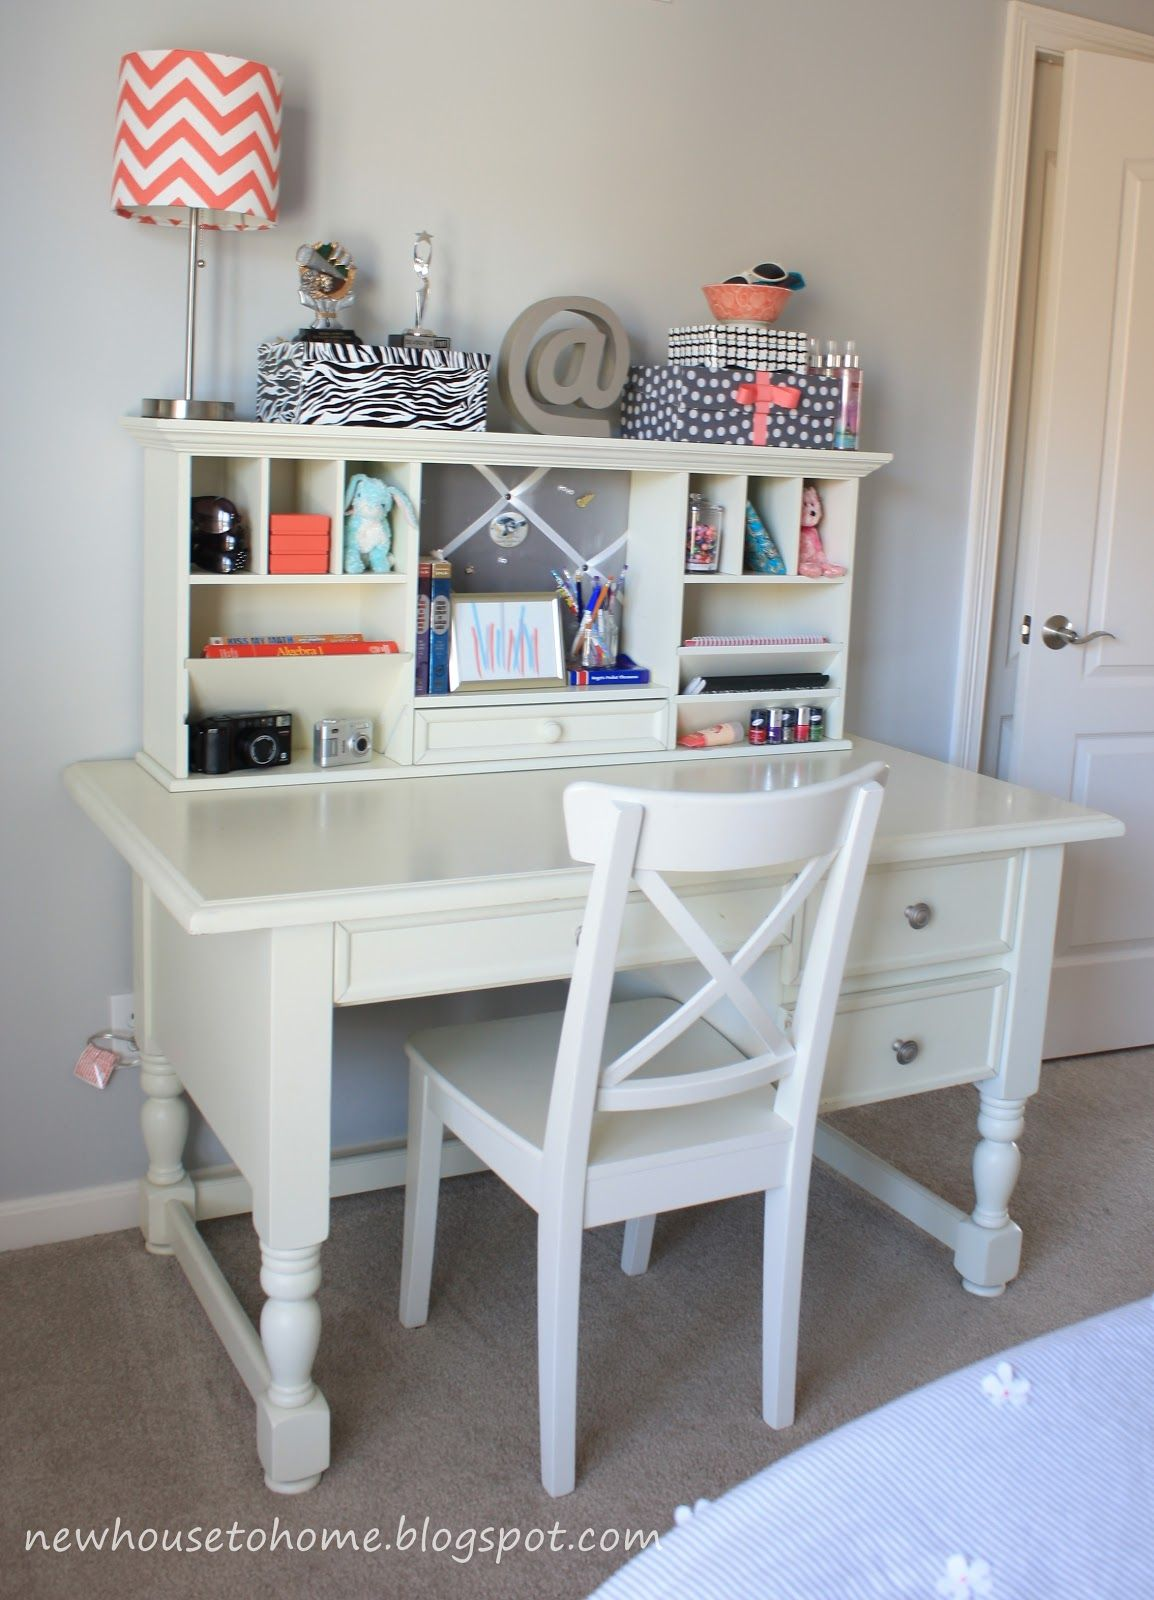 Related Post Desk For Girls Room Furniture Warehouse Teenage Girl ...